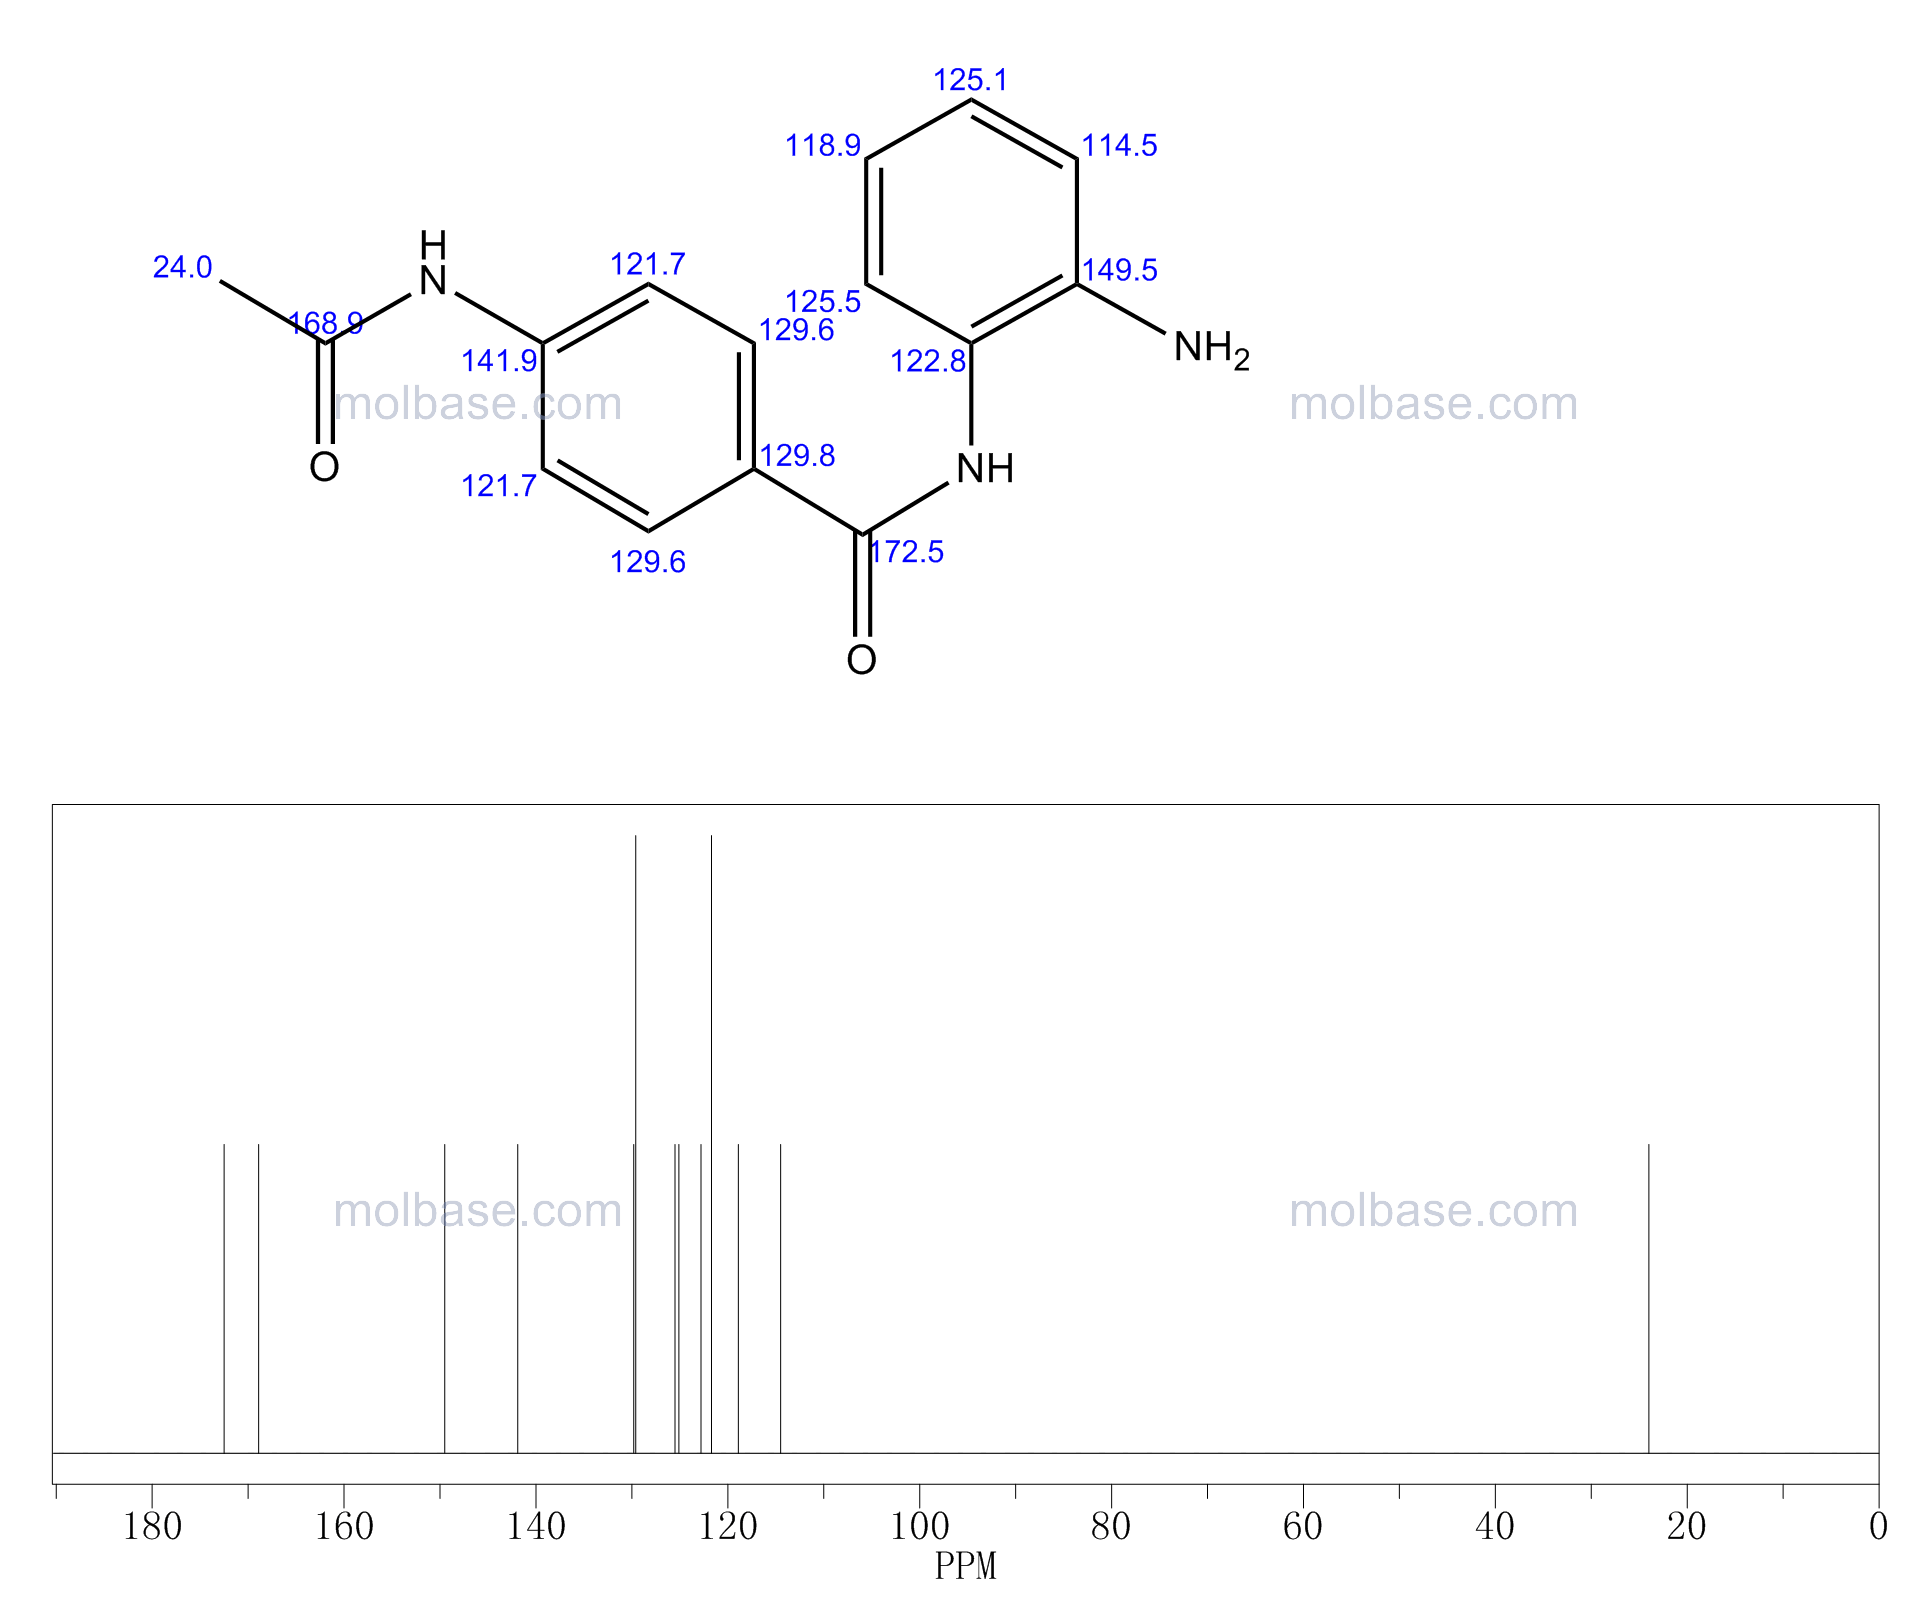 4-acetamido-N-(2-aminophenyl)benzamide NMR spectra analysis, Chemical CAS NO. 112522-64-2 NMR spectral analysis, 4-acetamido-N-(2-aminophenyl)benzamide C-NMR spectrum